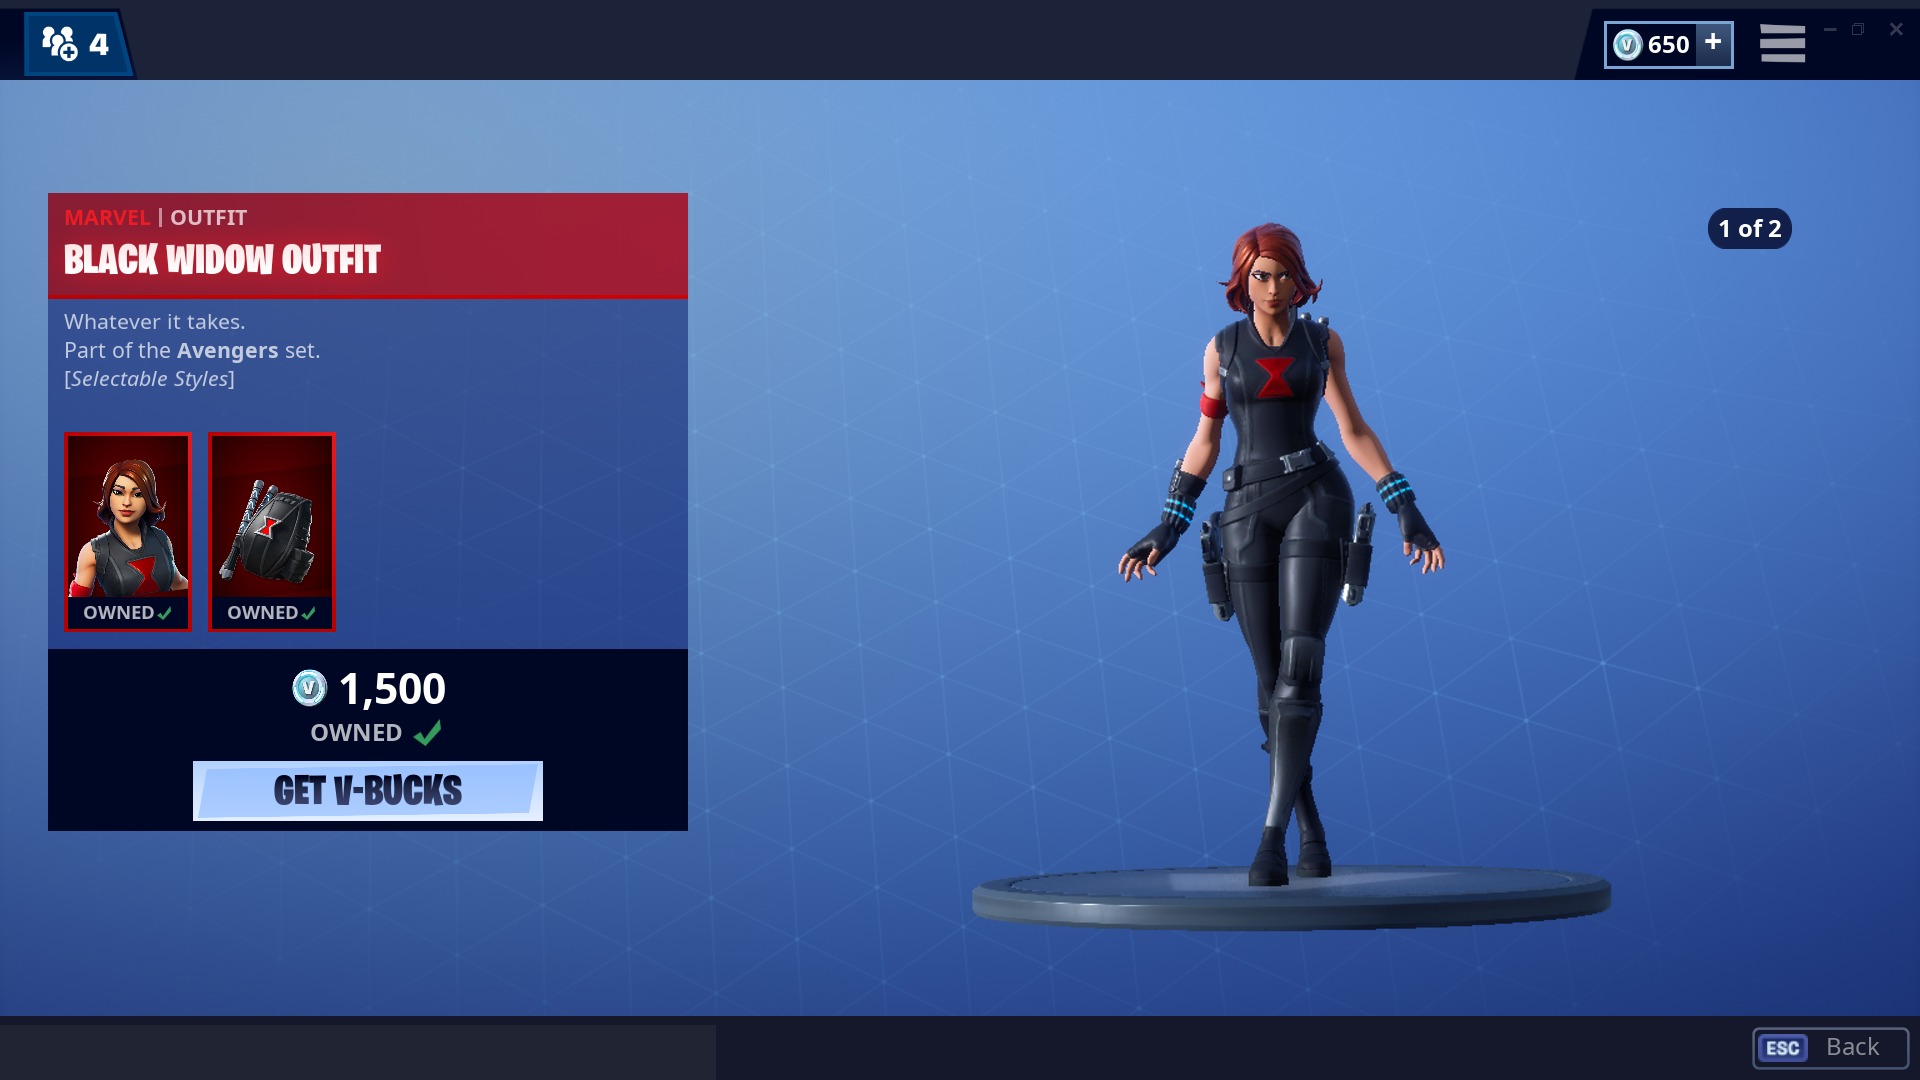 Avengers: Endgame skins come to Fortnite, starting with